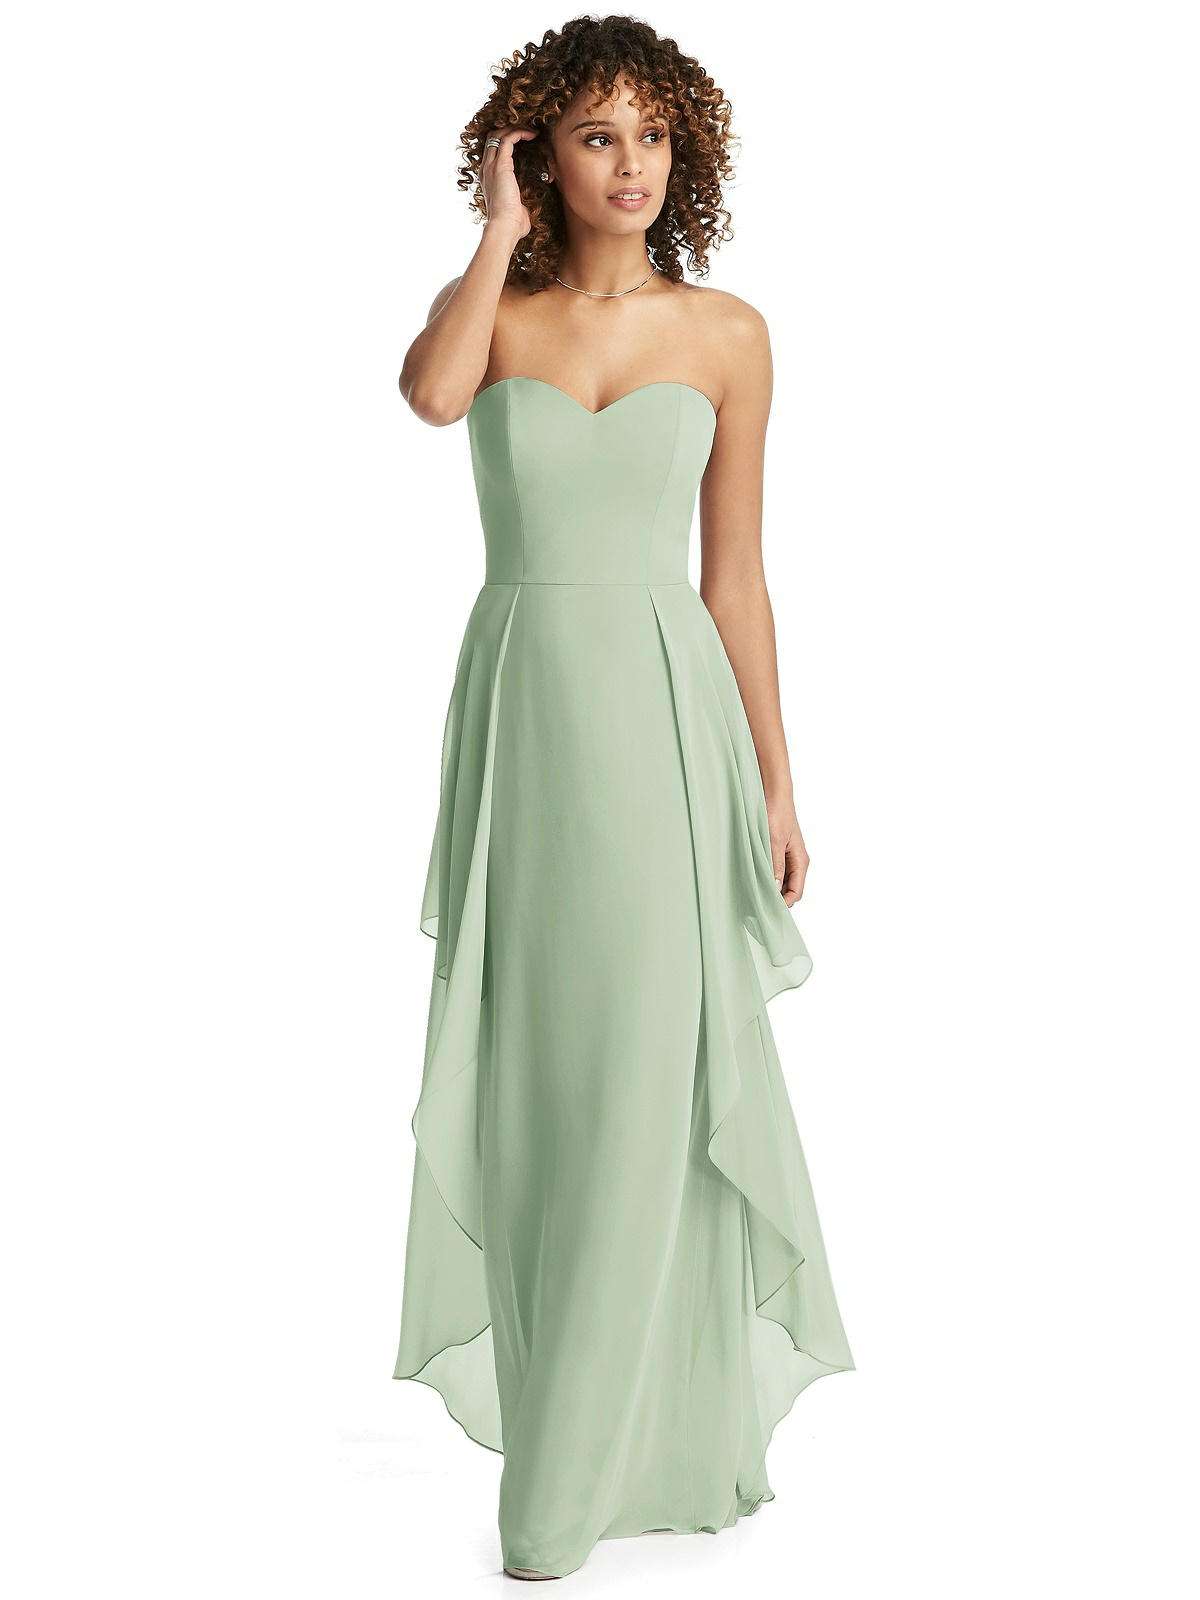 fall wedding bridesmaid dress celadon